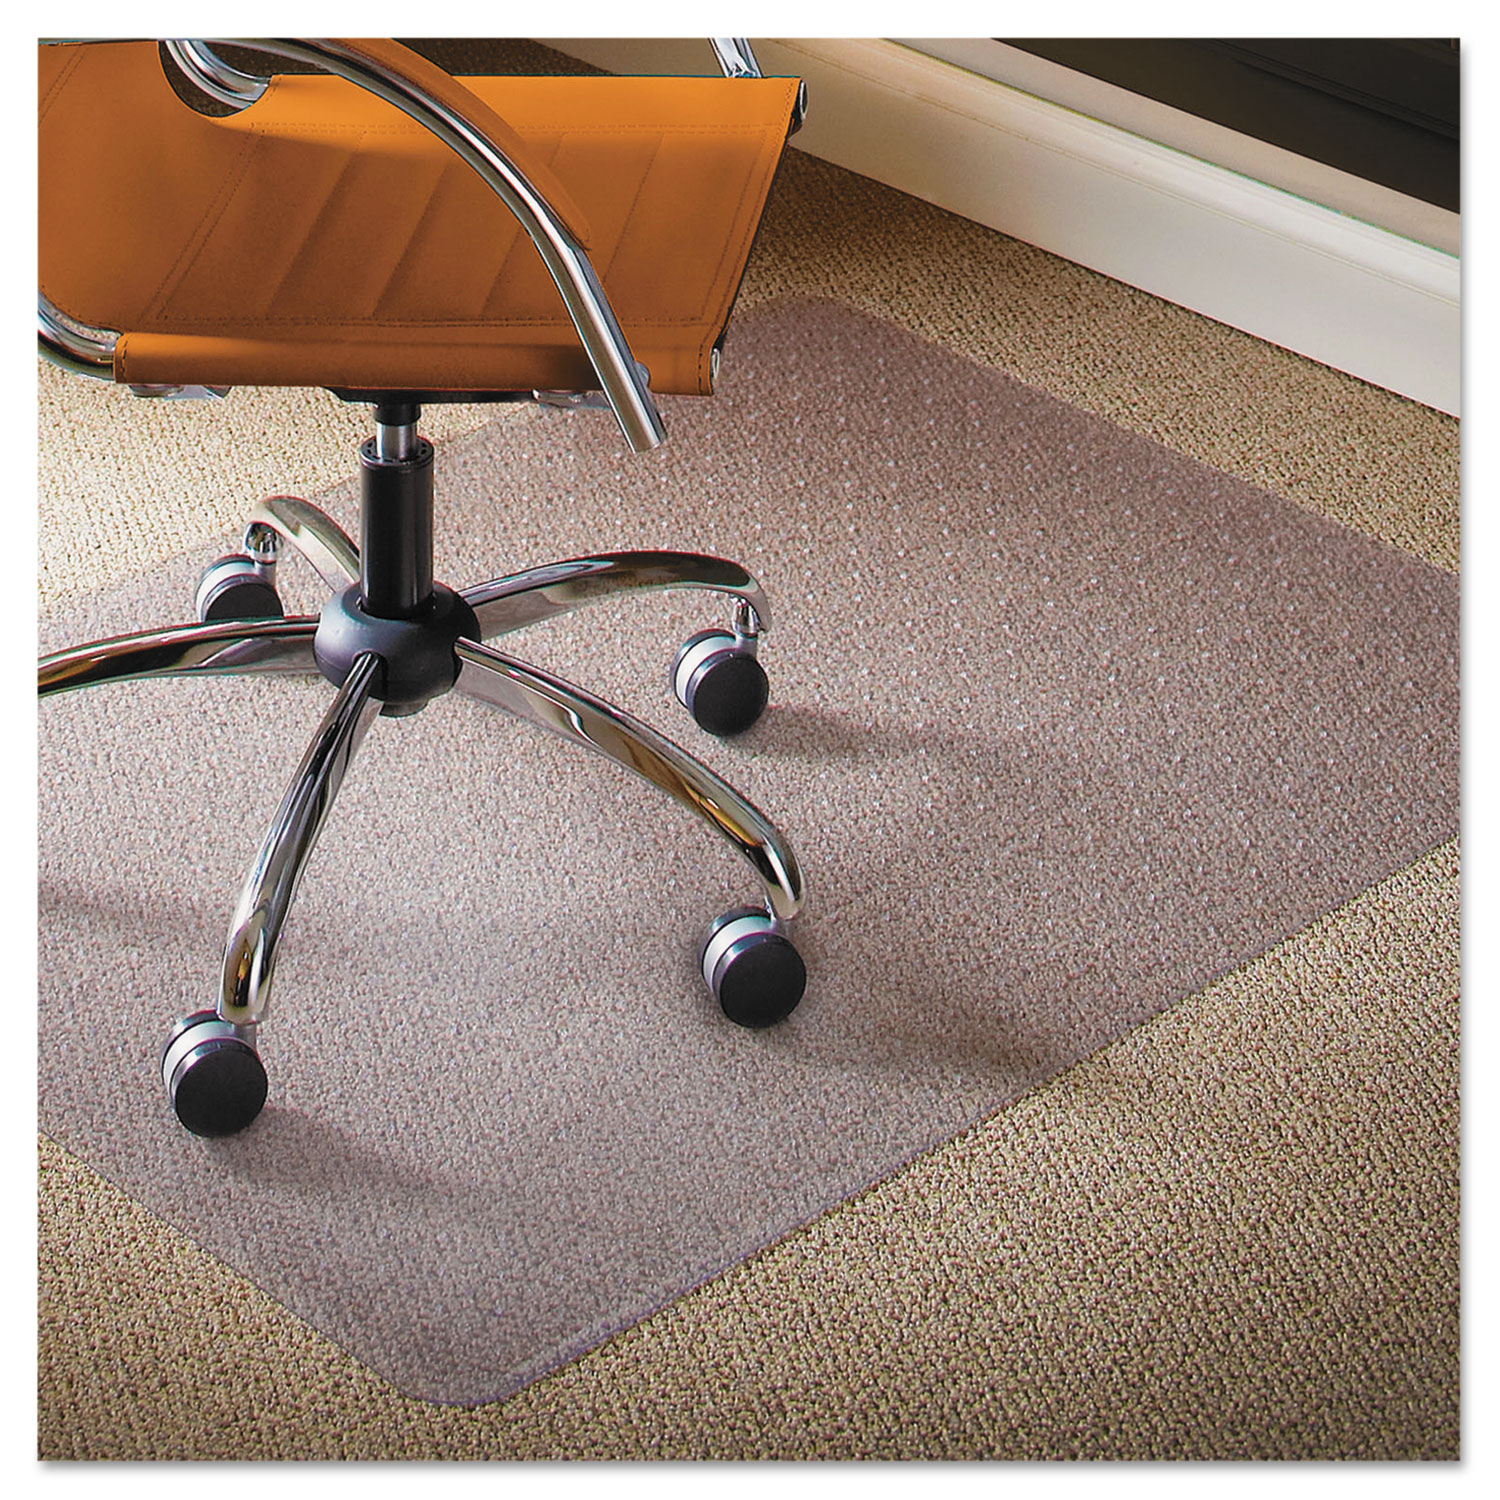 natural origins chair mat for carpet by es robbinsa esr141028